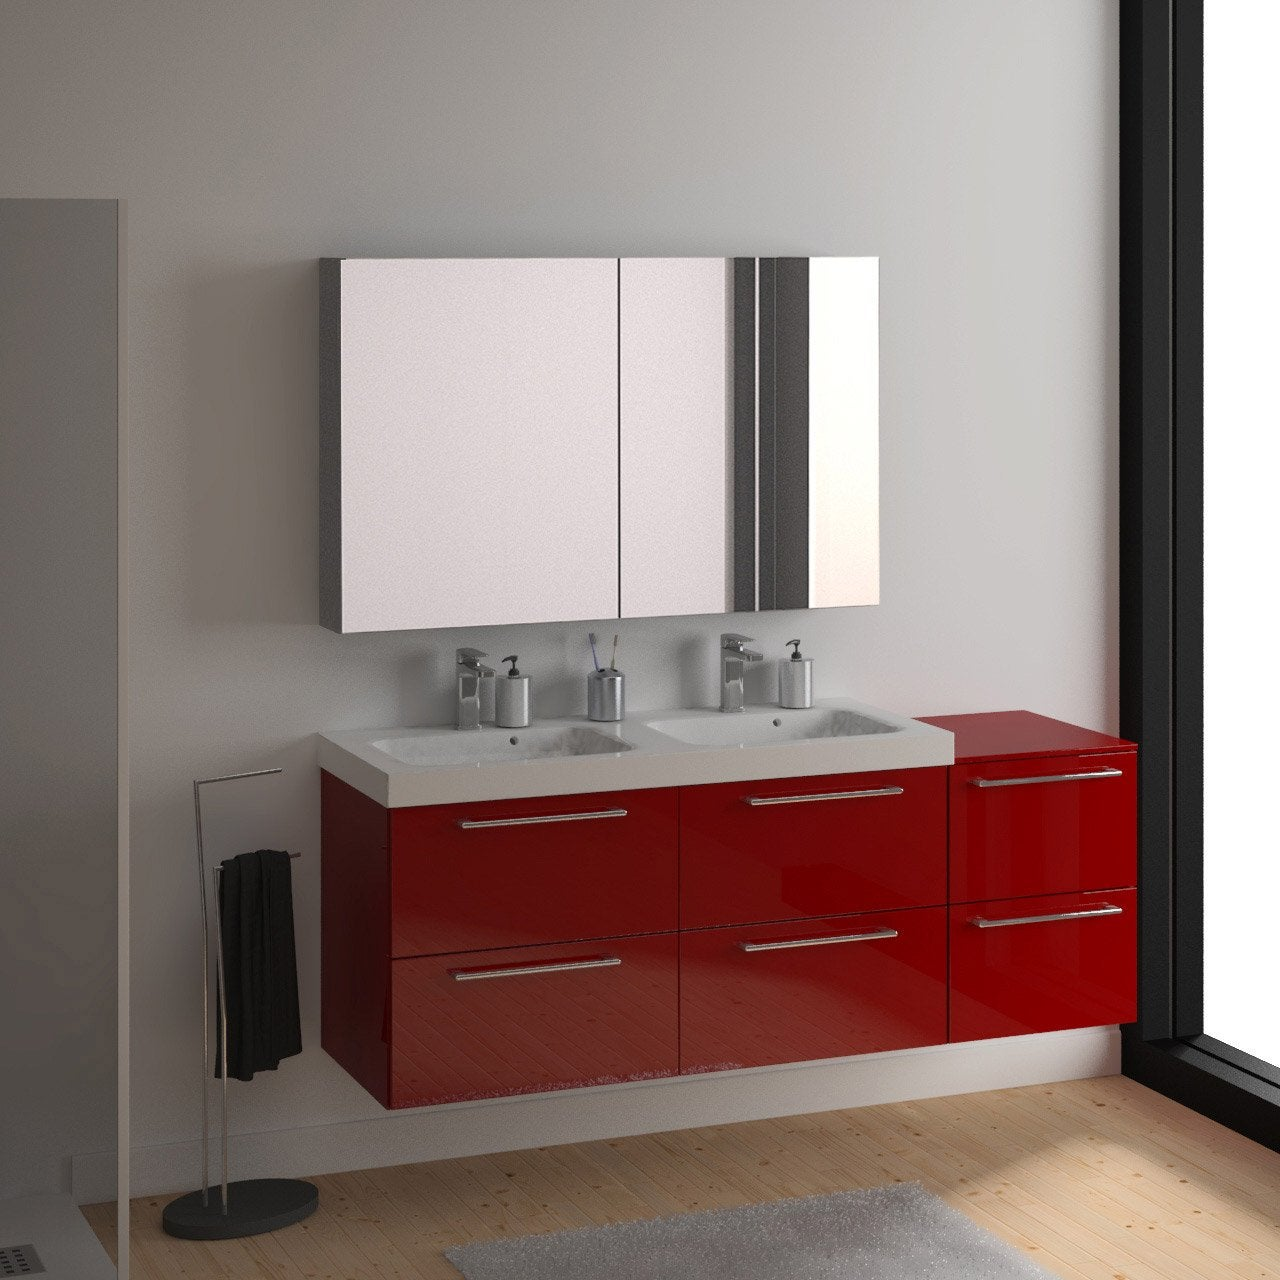 Meuble vasque 121 cm remix leroy merlin - Meuble toilette leroy merlin ...